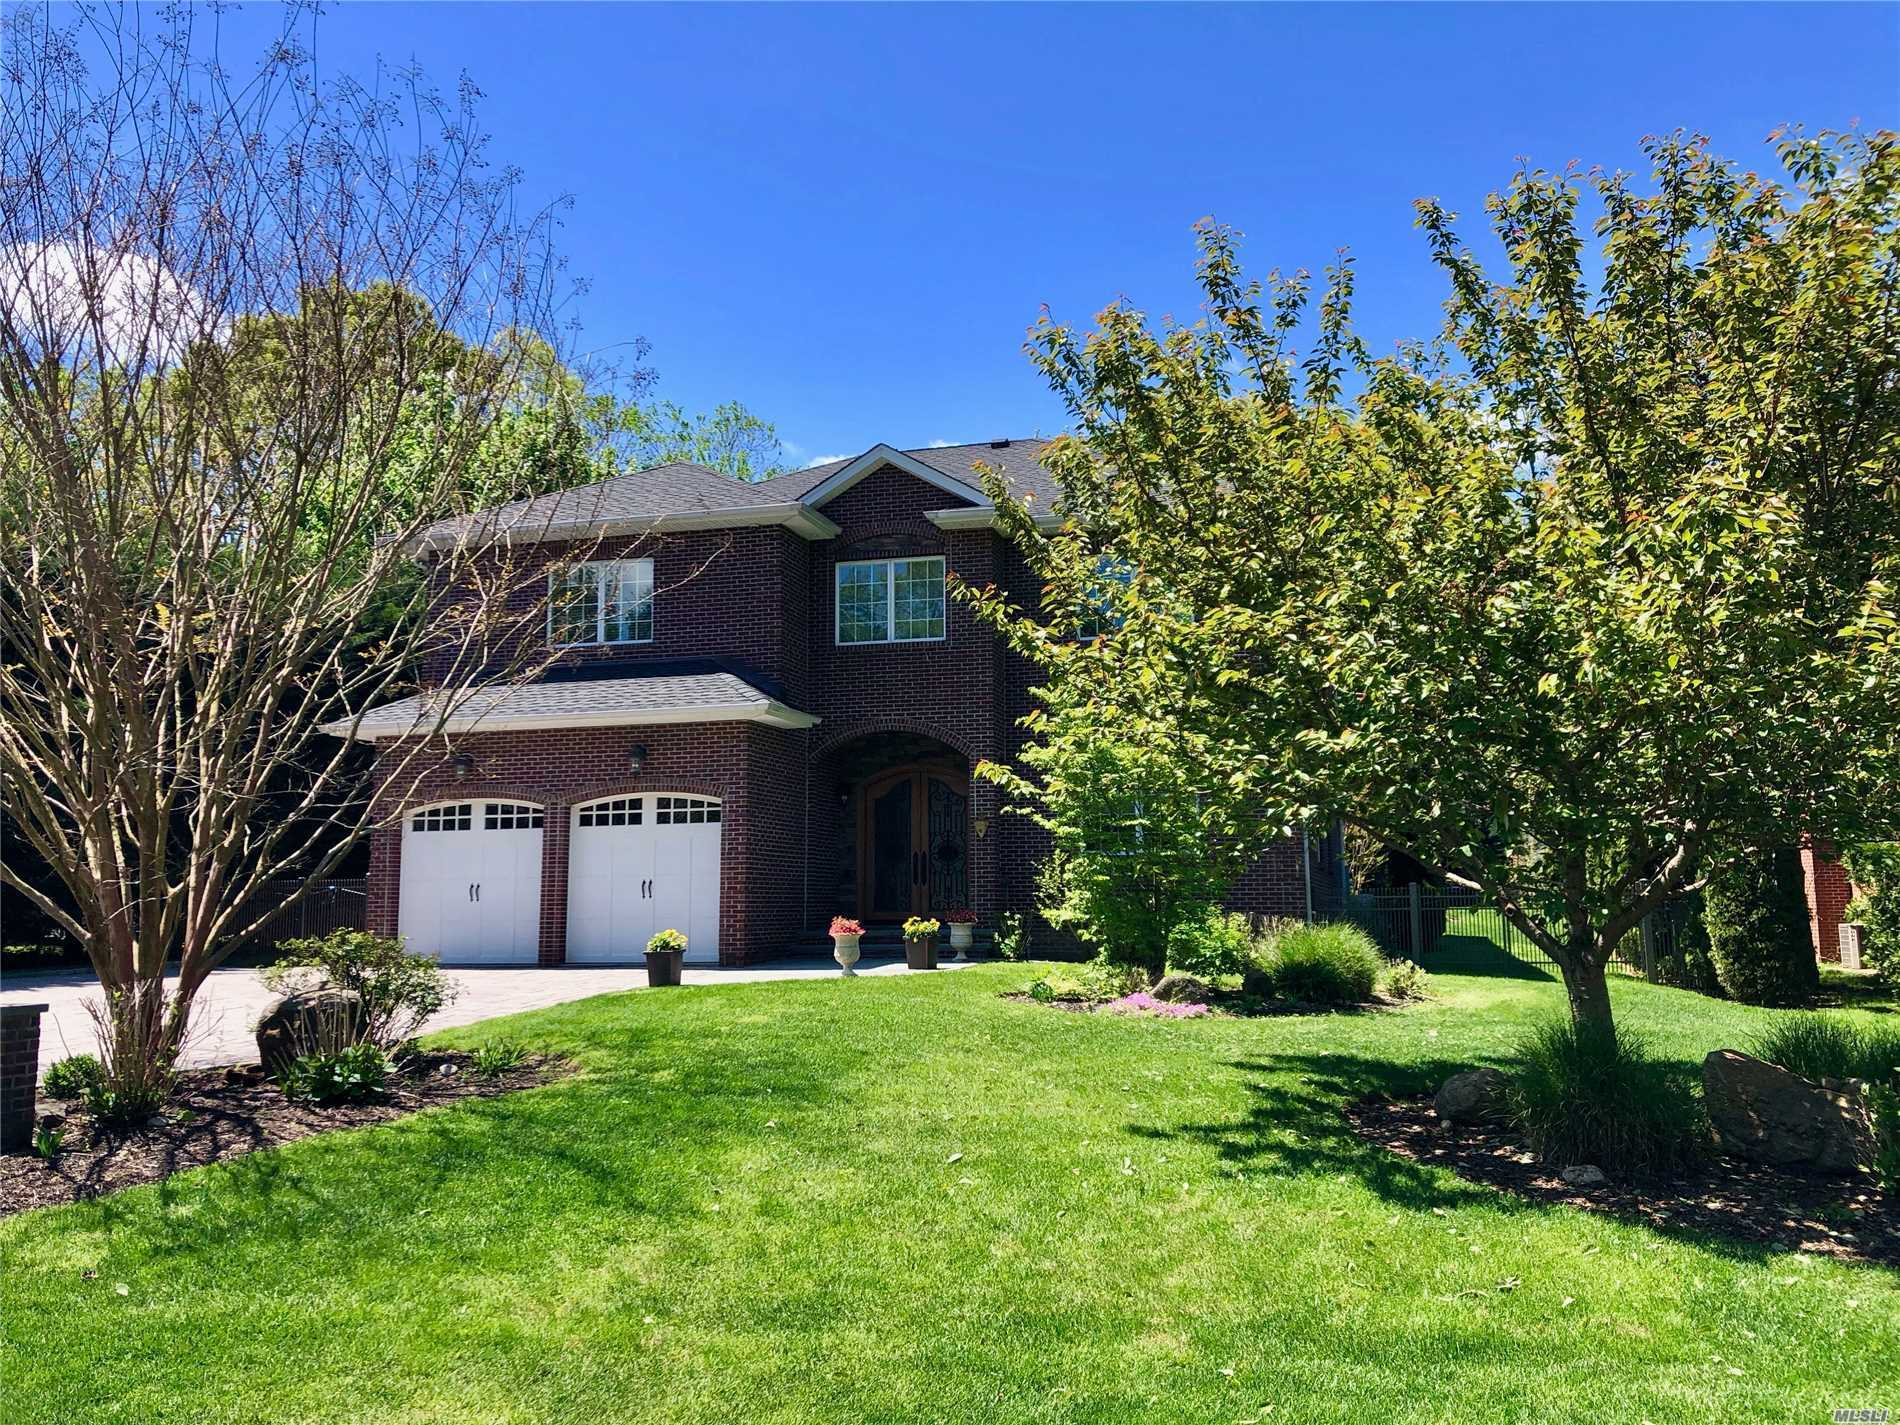 New To Market! This luxury 10-year young BRICK Center Hall Colonial boasts 4 bedrooms, 4 baths, office, family room, 'homework room', 2nd fl study, radiant heat throughout incl finished basement! Situated on a flat .42 acre with room for pool, mid-block in desirable North Shore Acres. This 4500 sq ft residence offers a perfect layout with quality finishes, gas line for Master fireplace, outdoor kitchen, 'wired for everything', tiled heated 2-car garage.Part Of Award-Winning North Shore Schools.